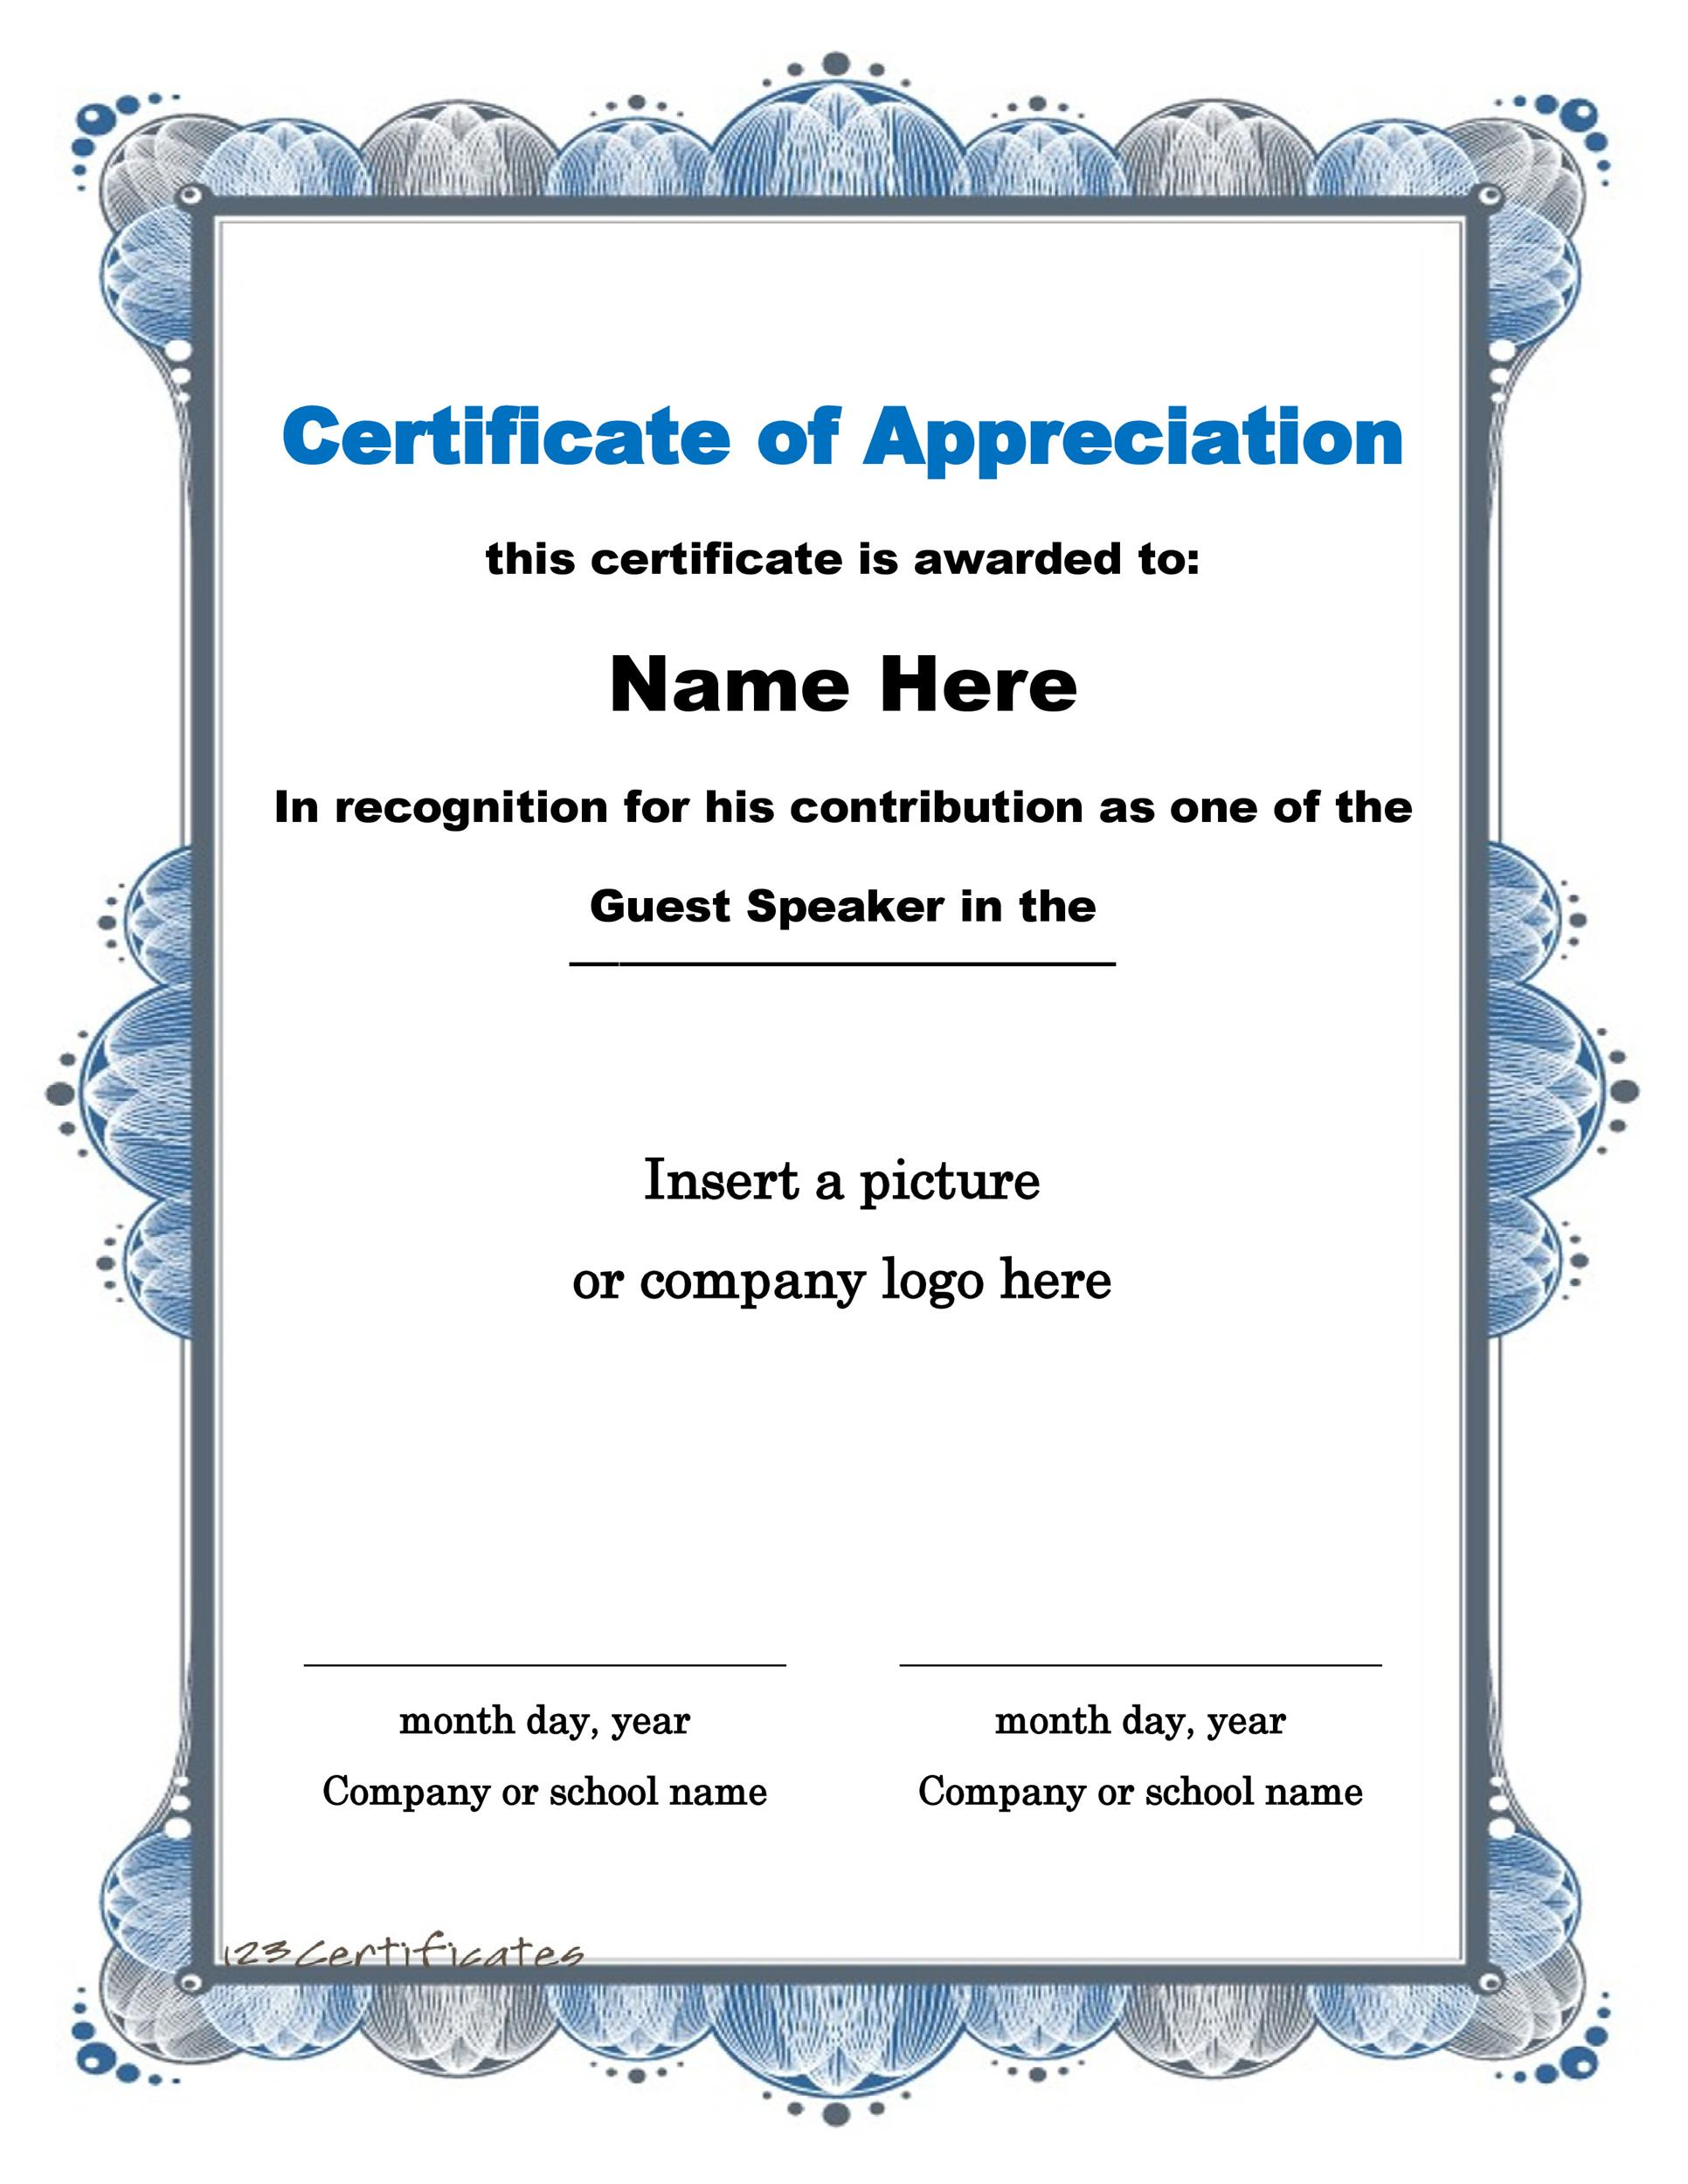 Free certificate of appreciation templates and letters 30 free certificate of appreciation templates and letters yelopaper Choice Image